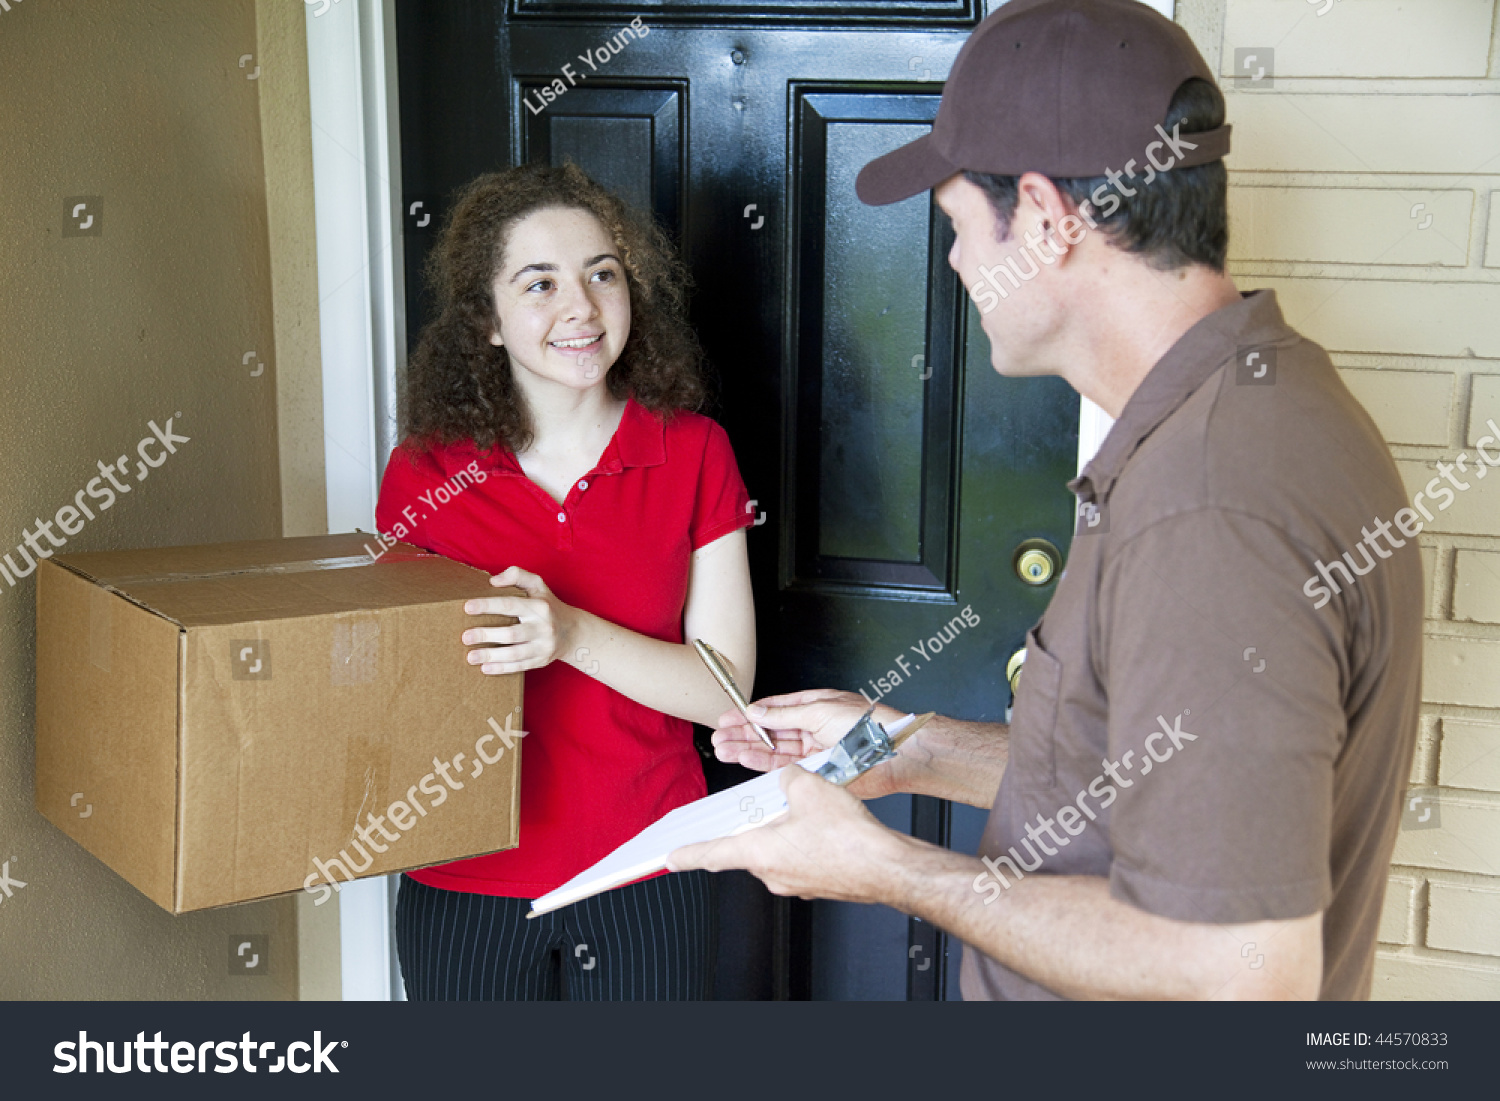 Delivery man brings a package to a customeru0027s door and waits for a signature.  sc 1 st  Shutterstock & Delivery Man Brings Package Customers Door Stock Photo 44570833 ... pezcame.com